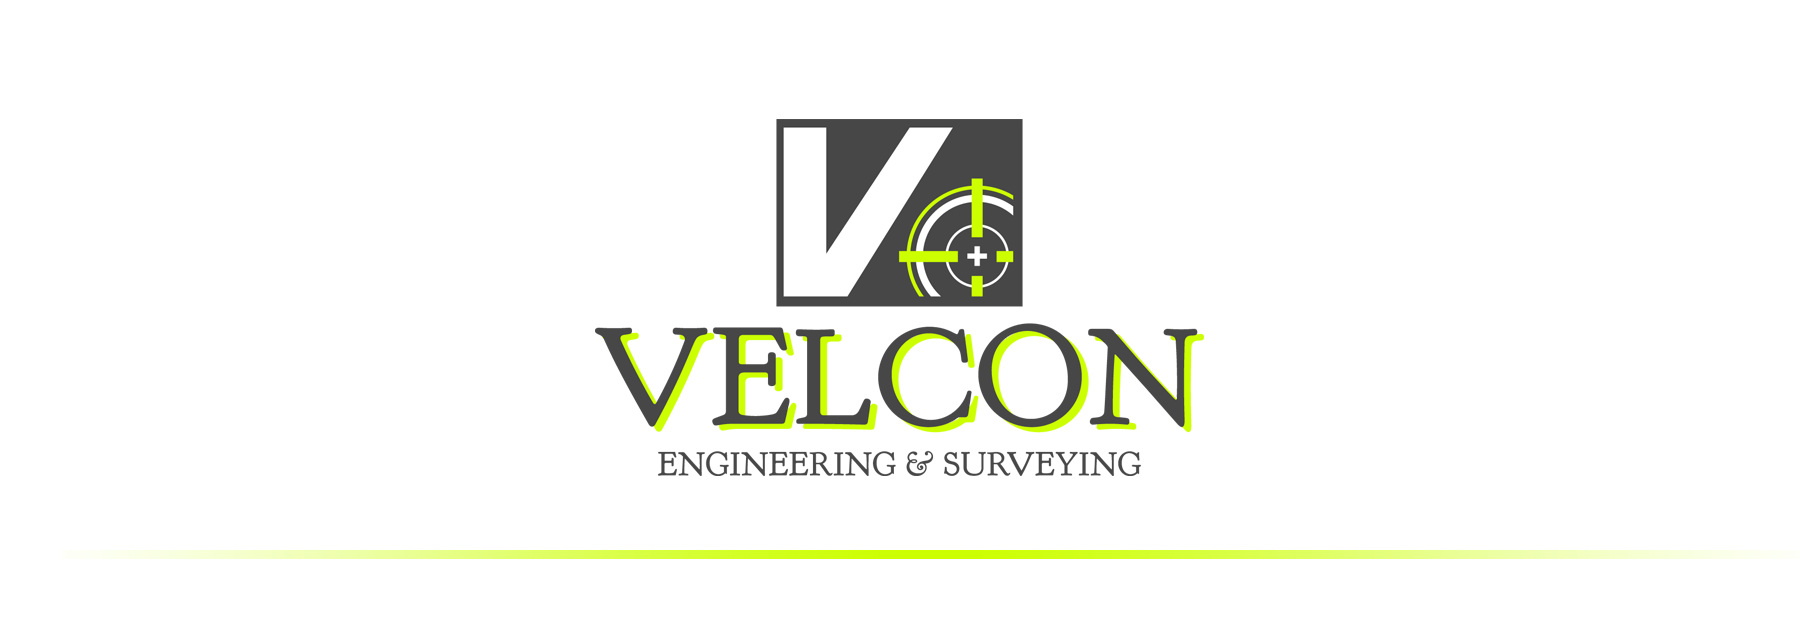 Velcon Engineering & Surveying